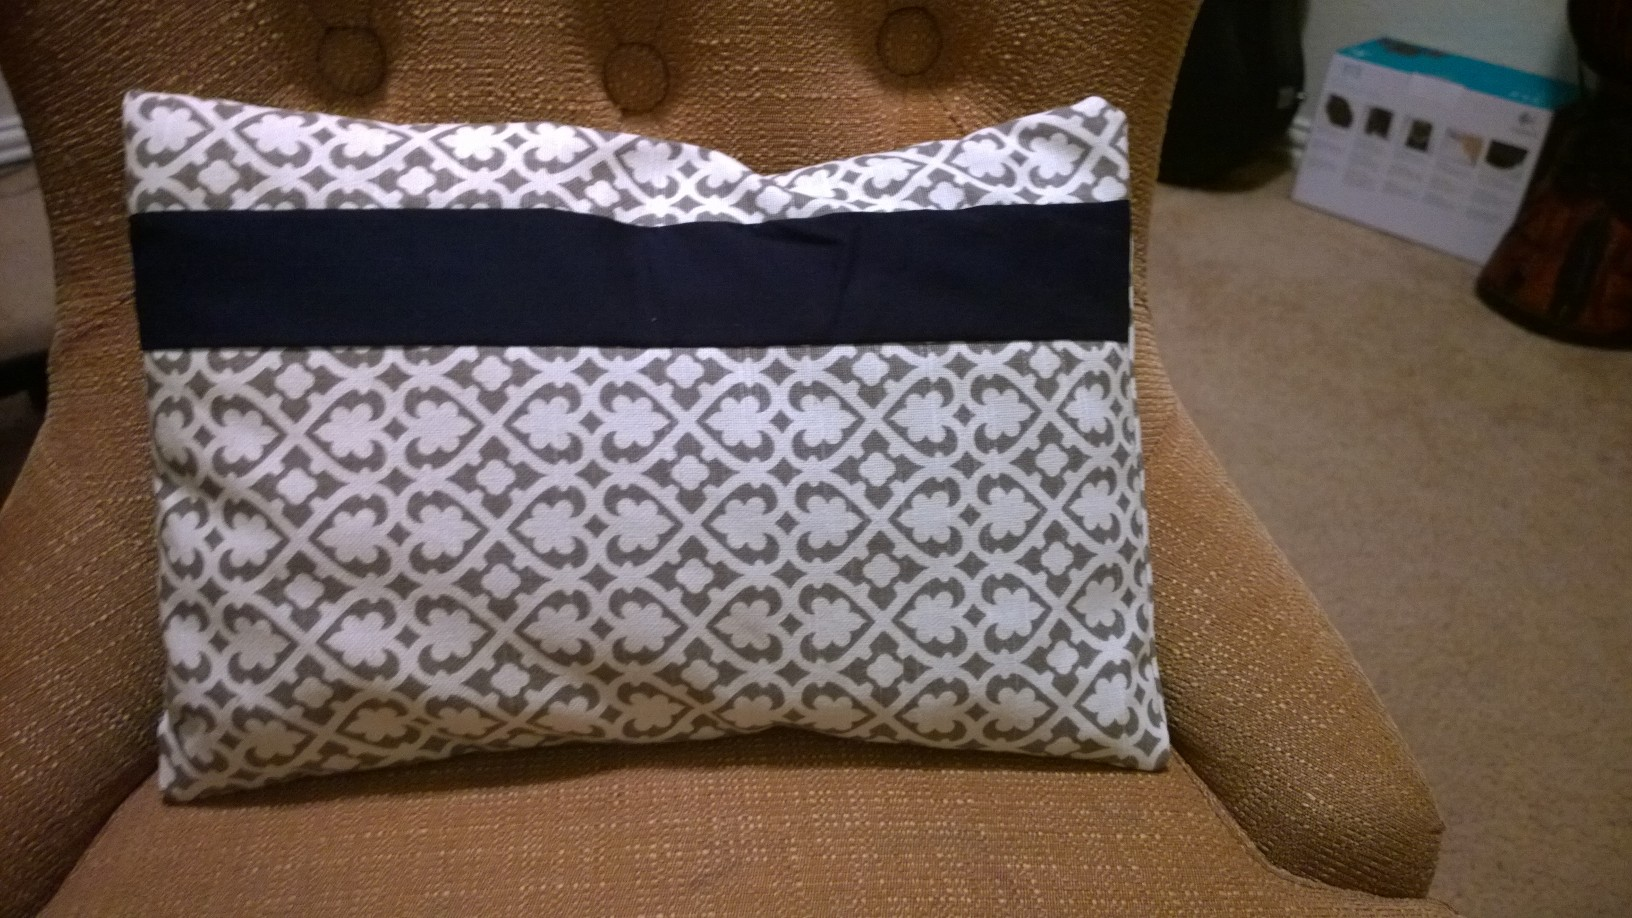 Small decorative pillow, to match the big pillows in the front...